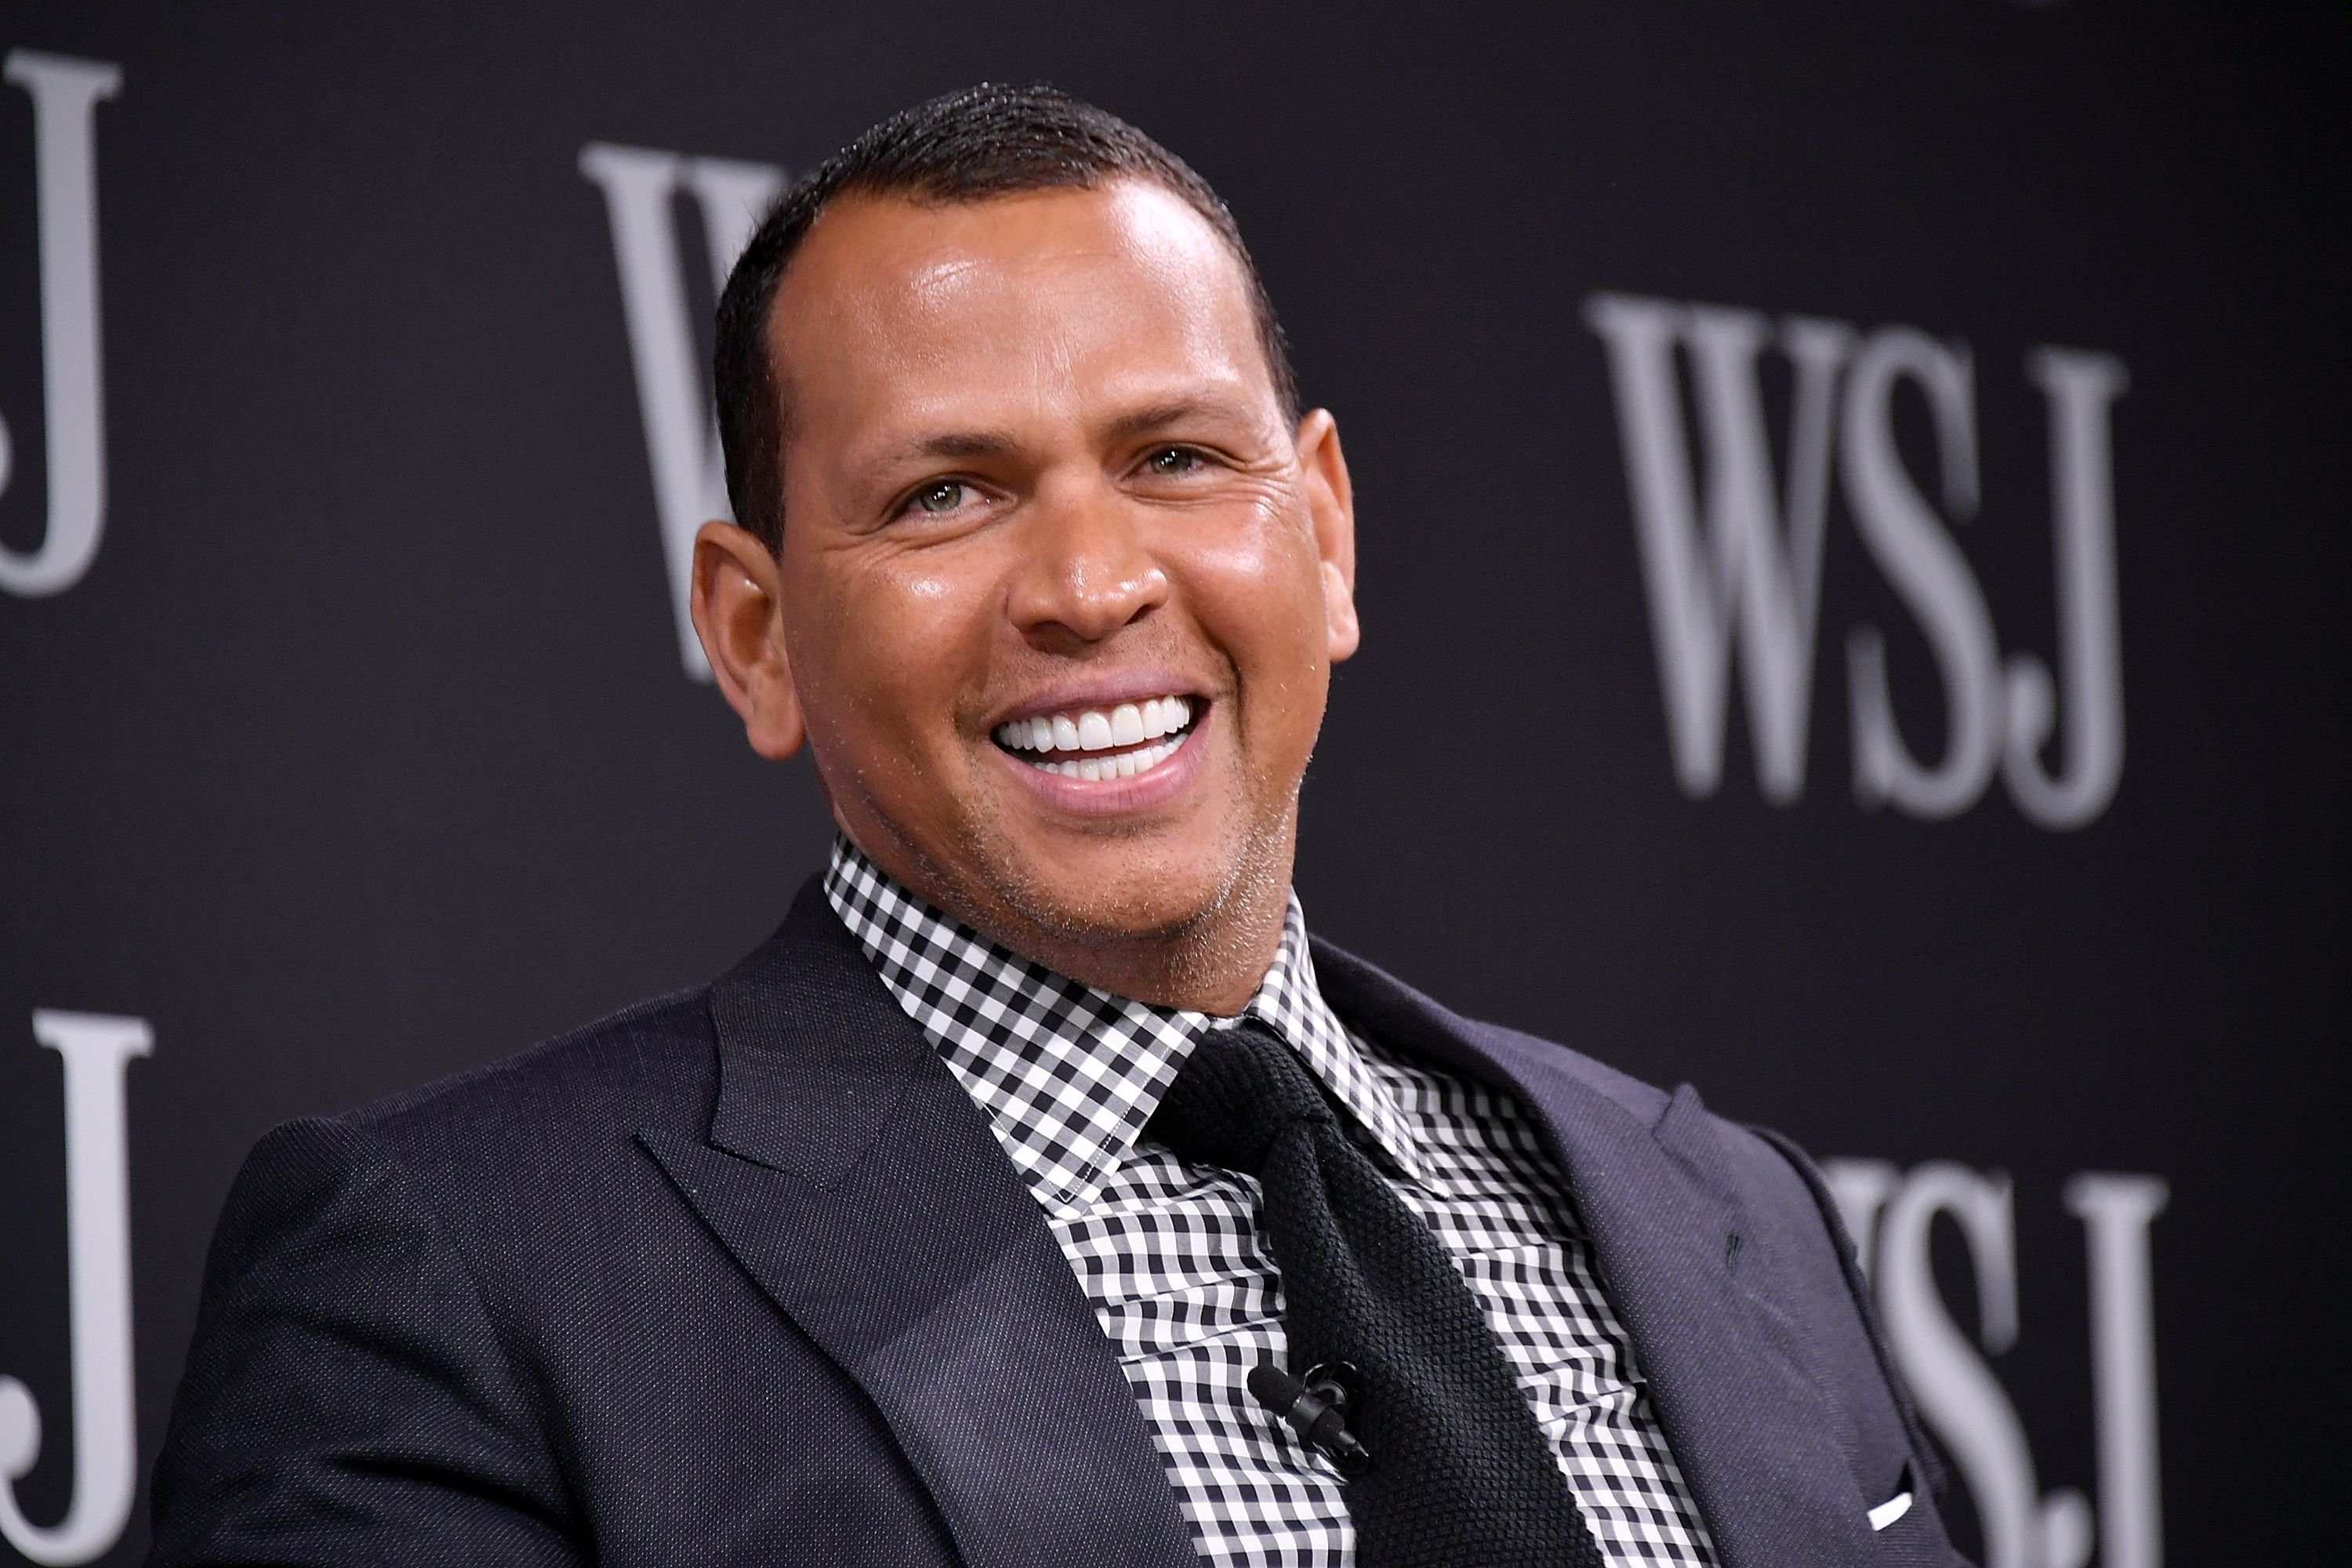 Sports commentator and former professional baseball player Alex Rodriguez takes part in a panel at WSJ's The Future of Everything Festival at Spring Studios on May 8, 2018 | Photo: Getty Images